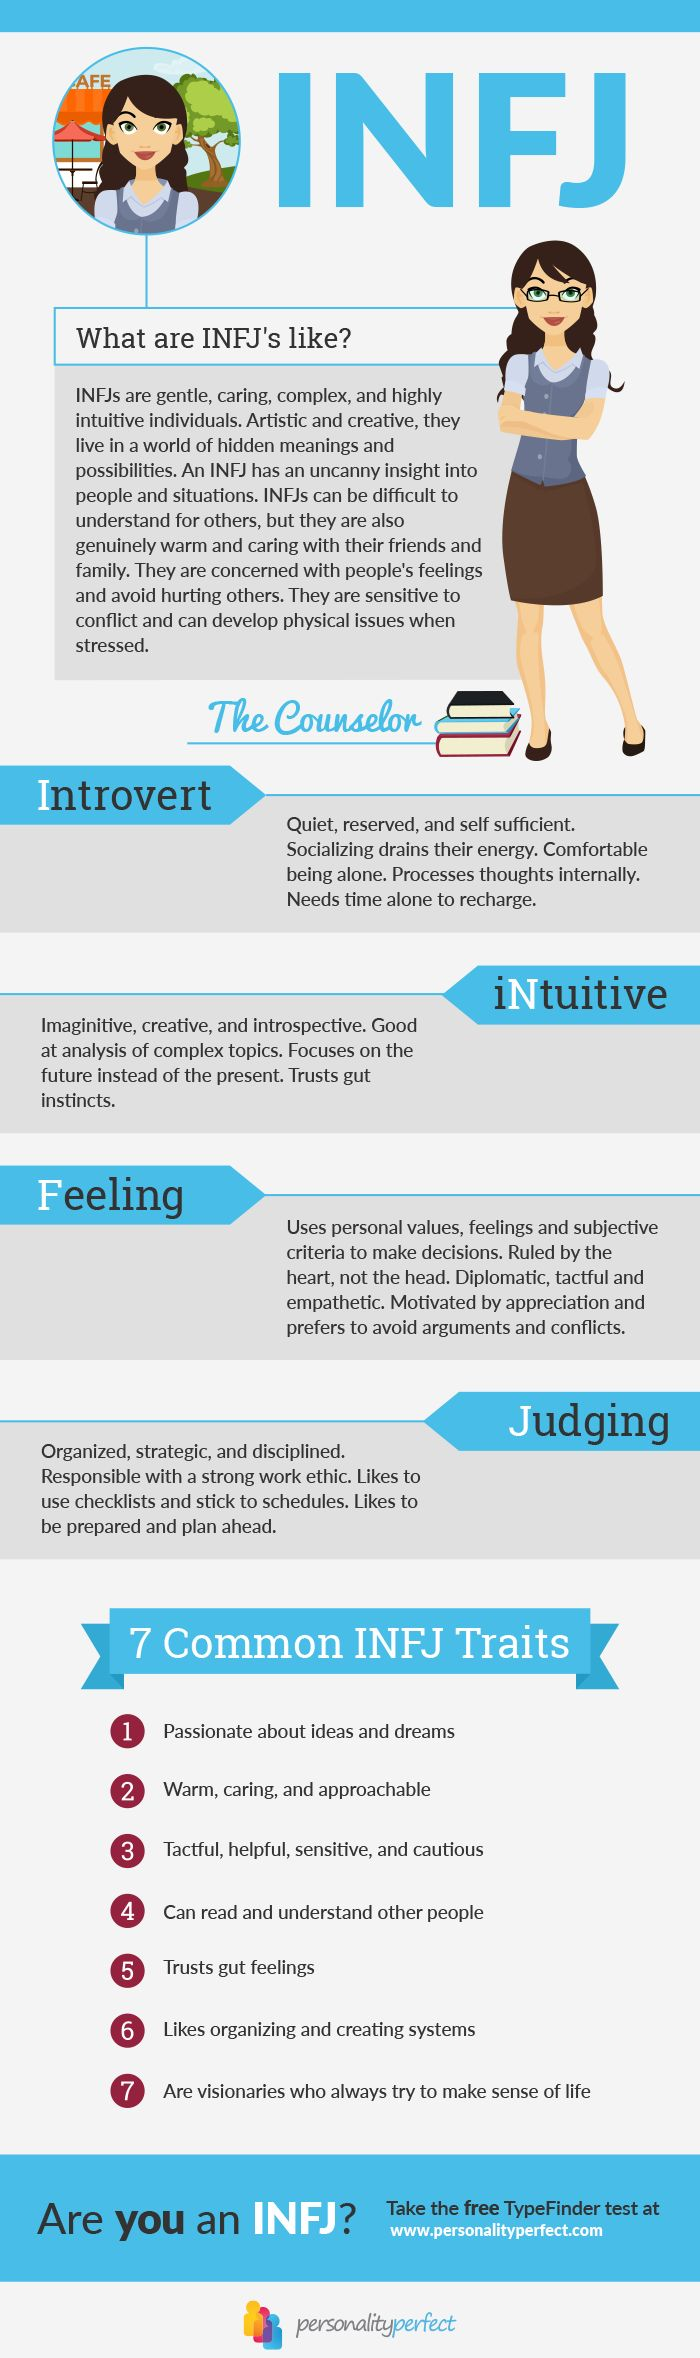 INFJ Personality Type u2013 The Counselor Share t…